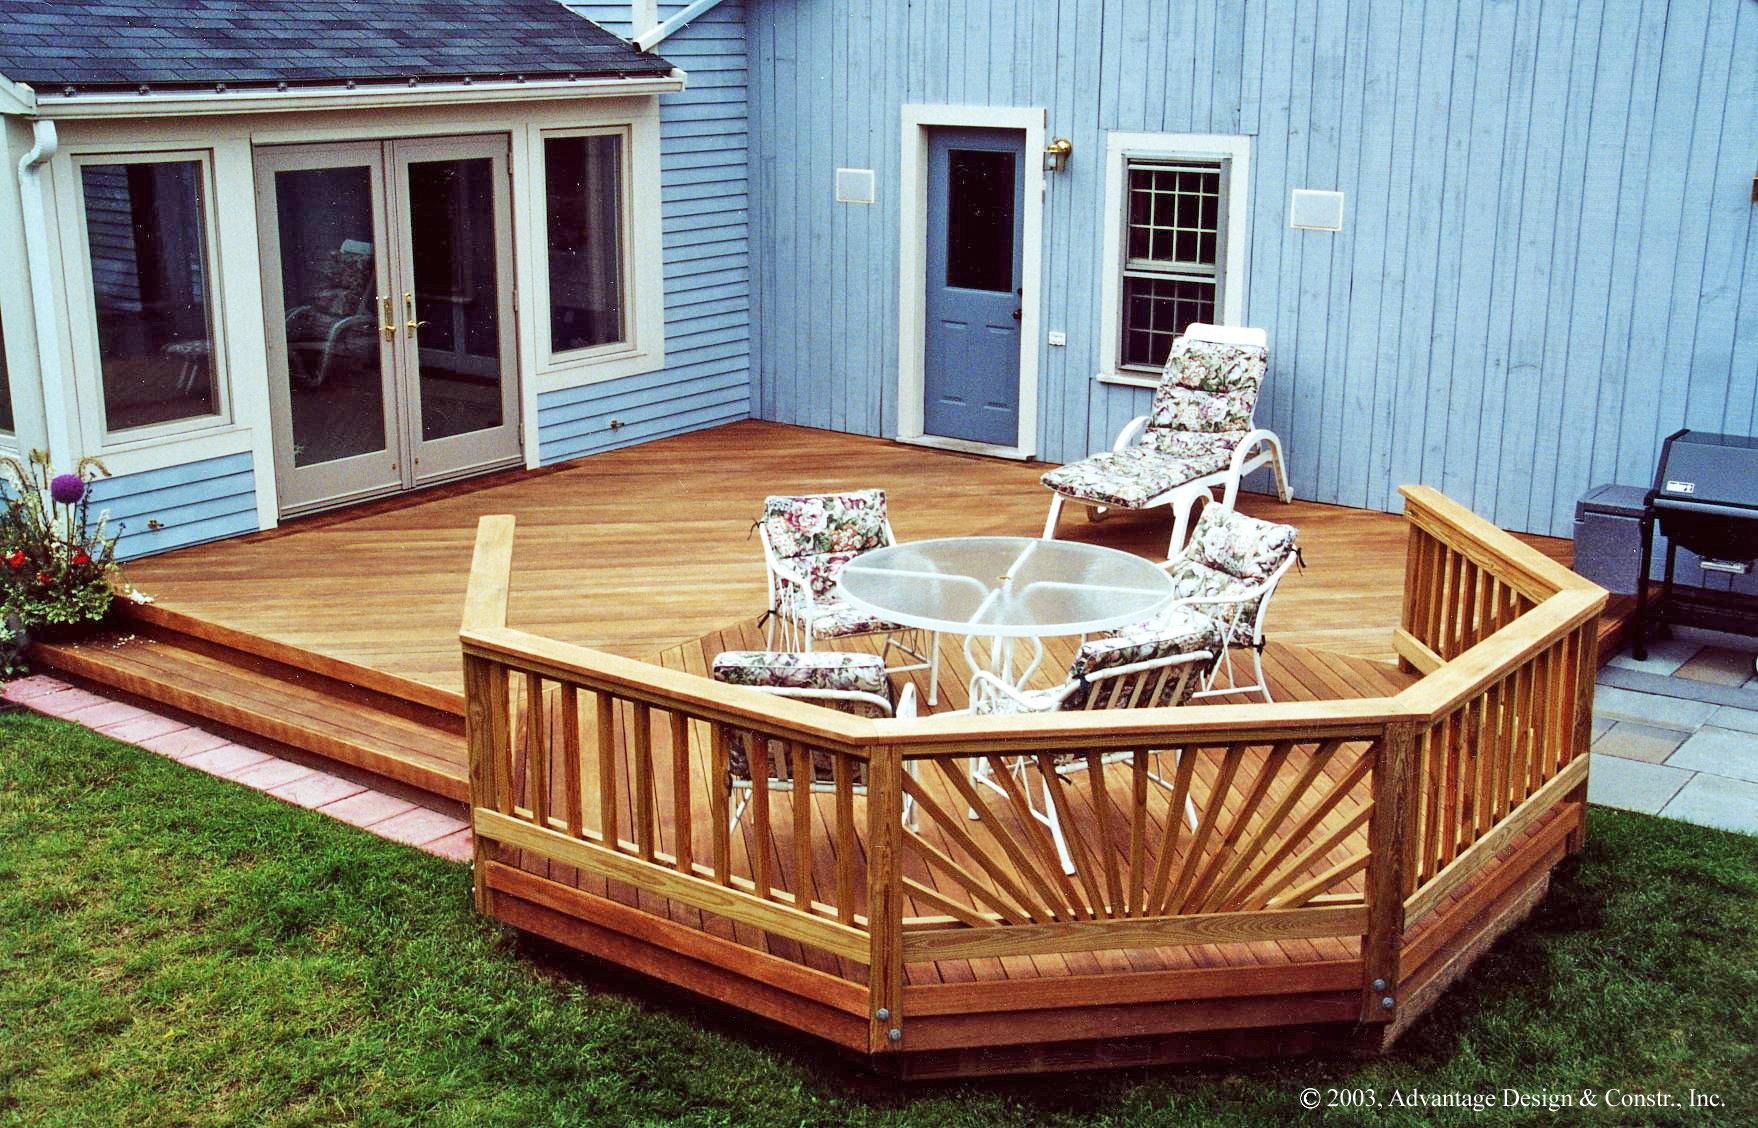 Choosing a Deck or a Patio? - Suburban Boston Decks and ... on Wood Deck Ideas For Backyard id=64091